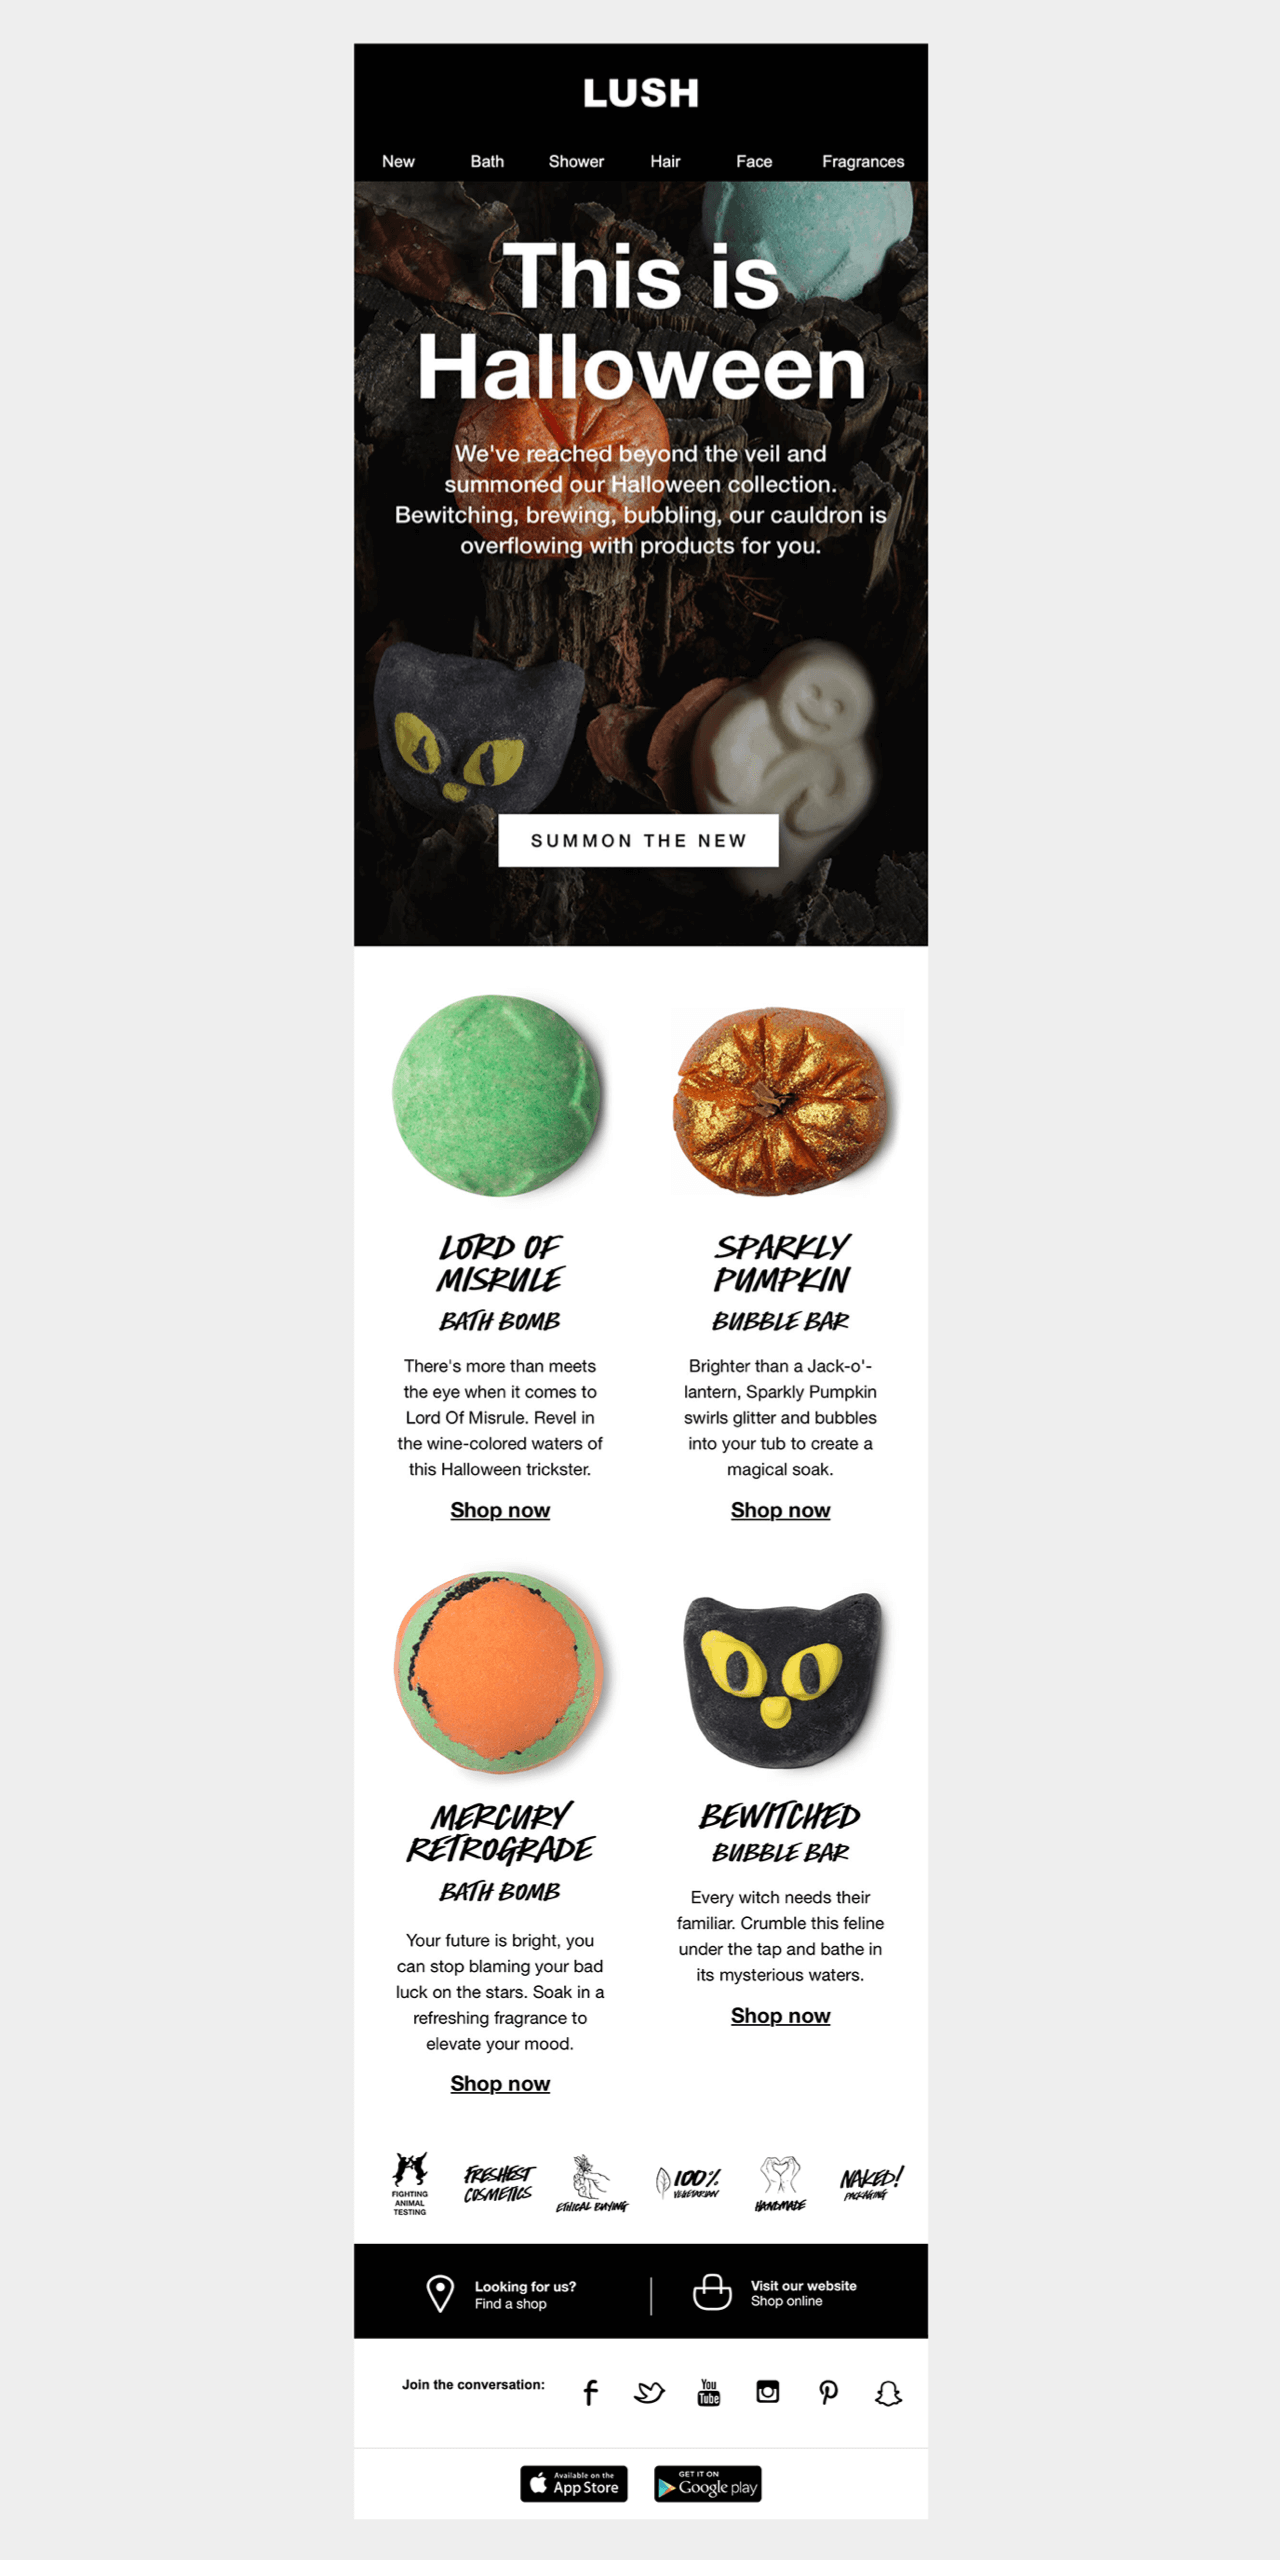 Lush launches Halloween email marketing campaign